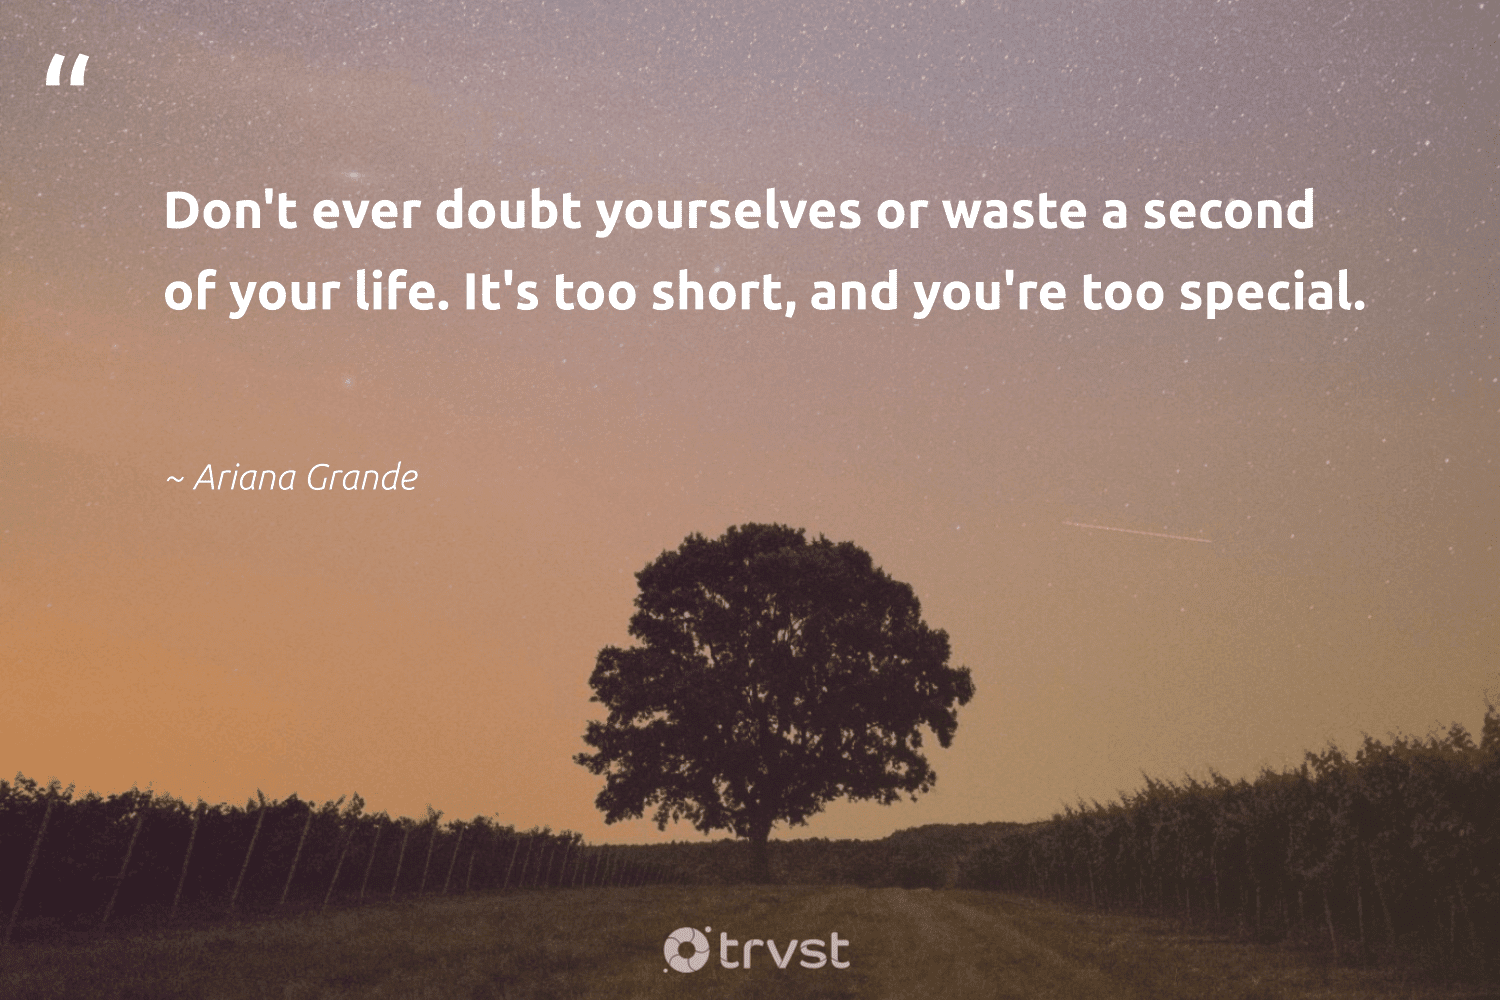 """""""Don't ever doubt yourselves or waste a second of your life. It's too short, and you're too special.""""  - Ariana Grande #trvst #quotes #waste #nevergiveup #dosomething #changemakers #dogood #mindset #gogreen #begreat #bethechange #health"""